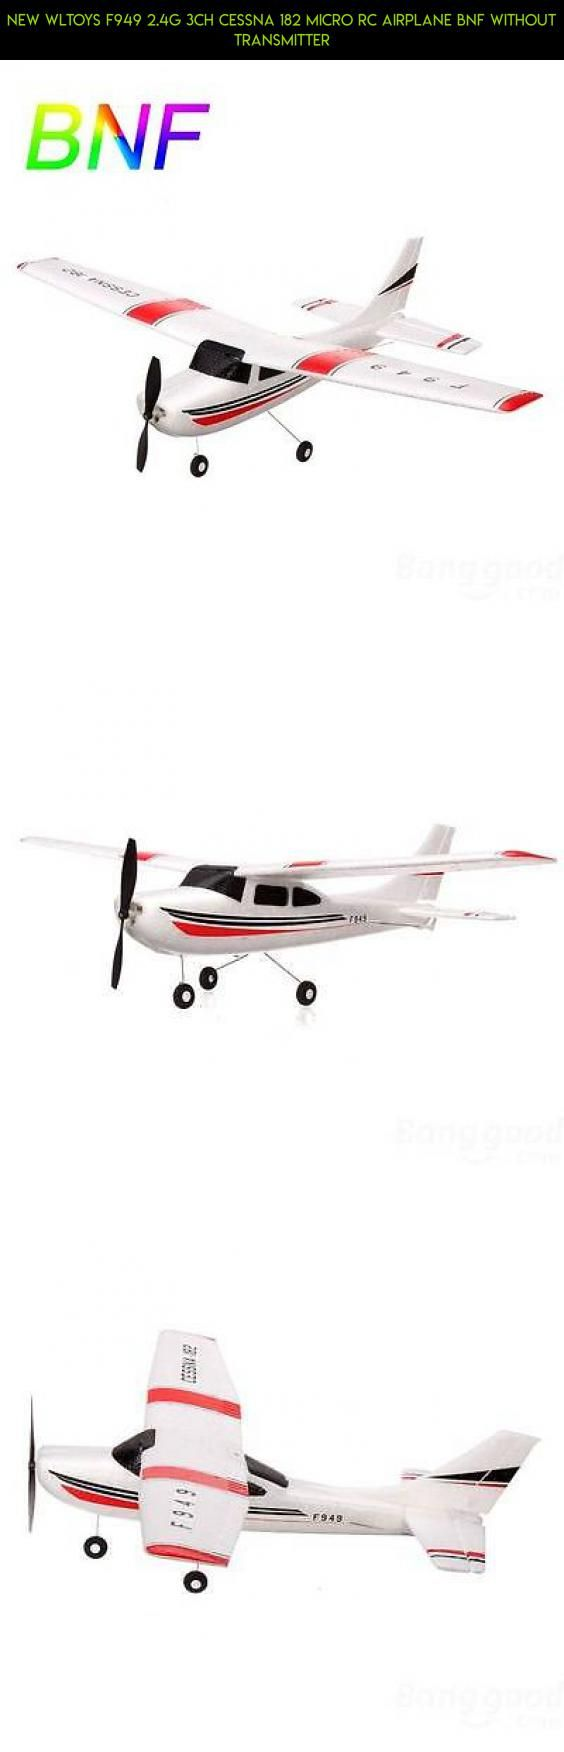 New WLtoys F949 2.4G 3CH Cessna 182 Micro RC Airplane BNF Without Transmitter #parts #fpv #plans #tech #gadgets #kit #technology #shopping #drone #cessna #camera #products #wltoys #racing